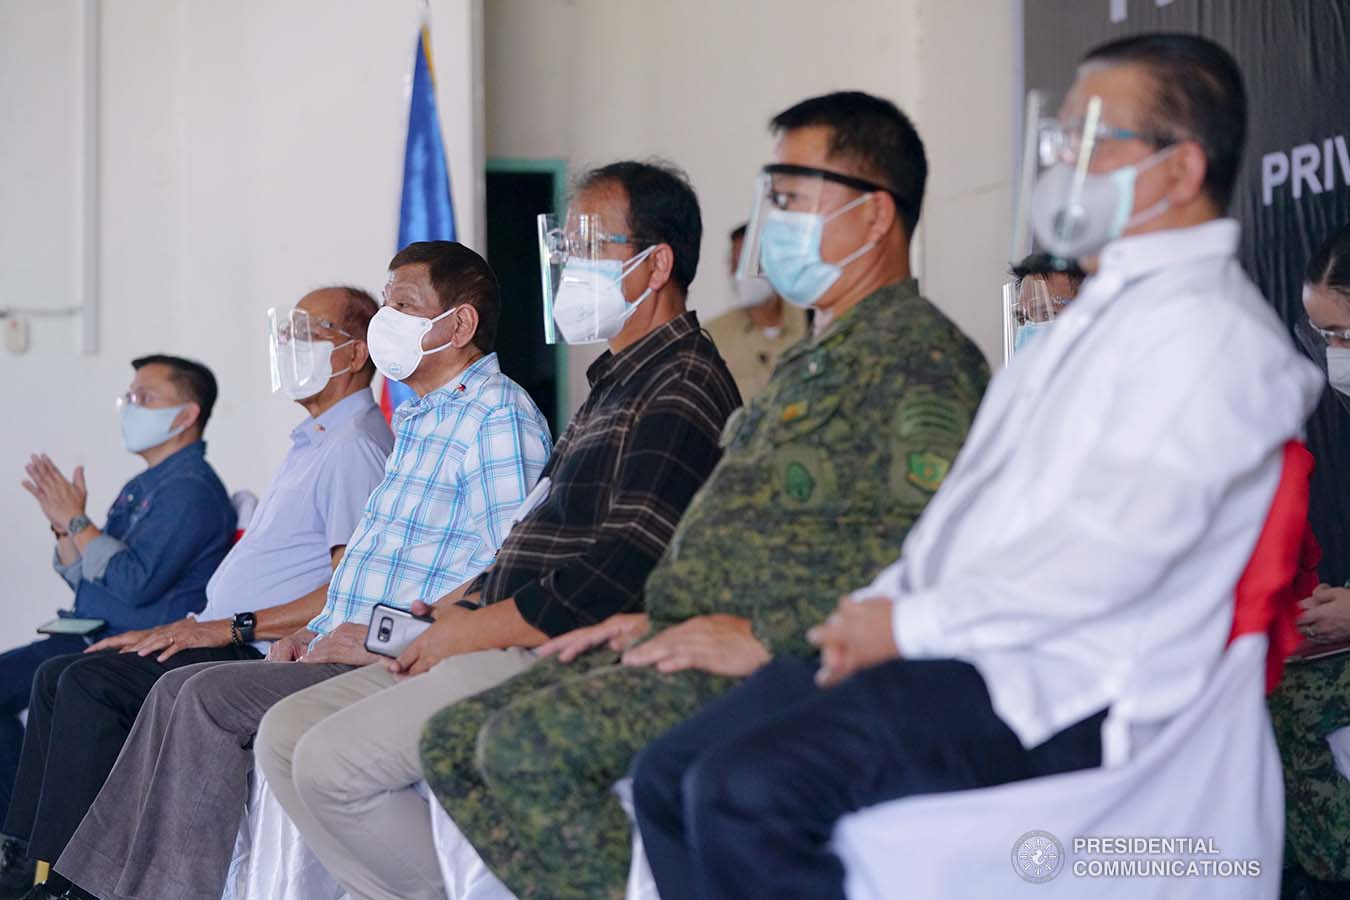 President Rodrigo Roa Duterte during his attendance in the meeting with Bangsamoro Autonomous Region in Muslim Mindanao (BARMM), local government officials, and area commanders of the Armed Forces of the Philippines and the Philippine National Police at Camp BGen. Gonzalo H. Siongco in Datu Odin Sinsuat, Maguindanao on May 11, 2021. JOEY DALUMPINES/ PRESIDENTIAL PHOTO